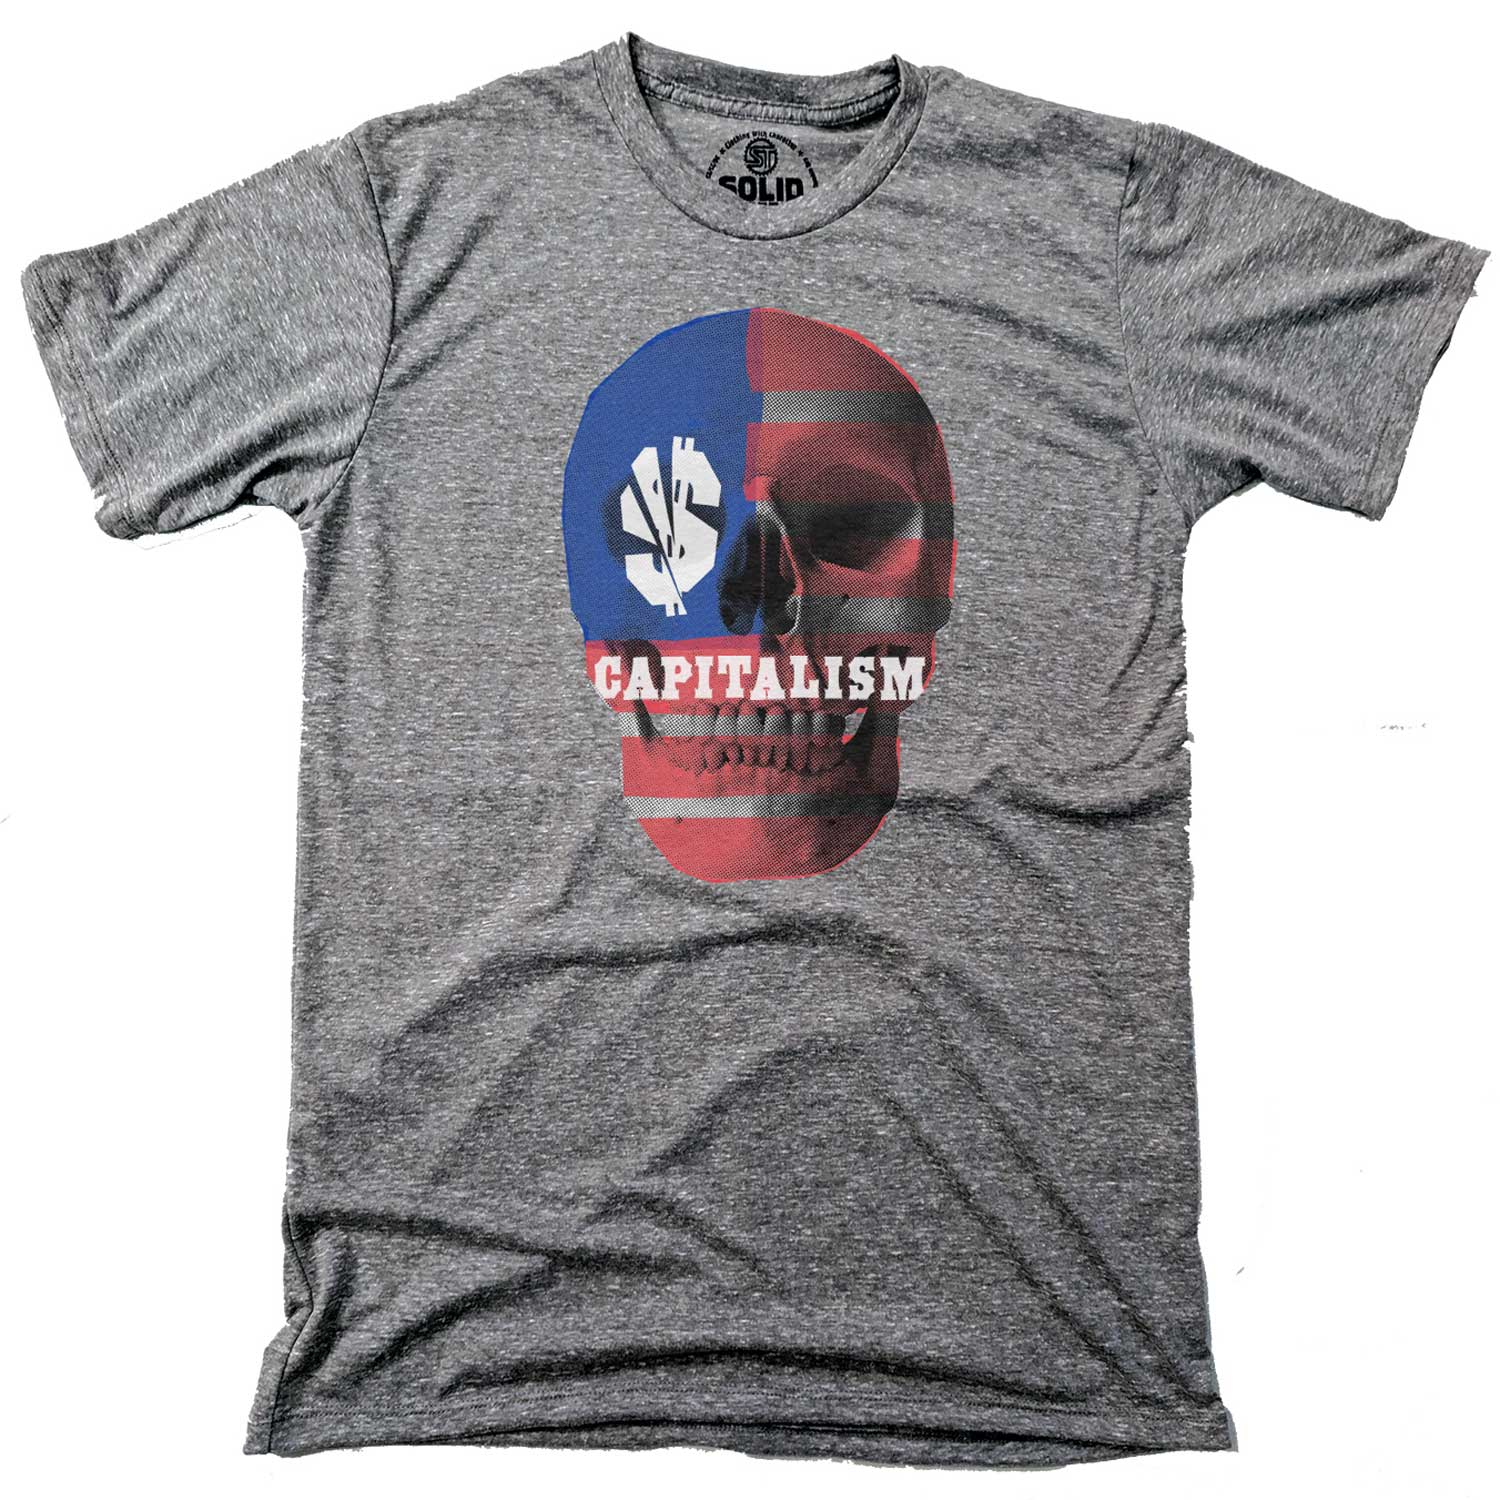 Men's Capitalism Skull Vintage Inspired T-shirt | Cool Income Inequality Graphic Tee | Solid Threads